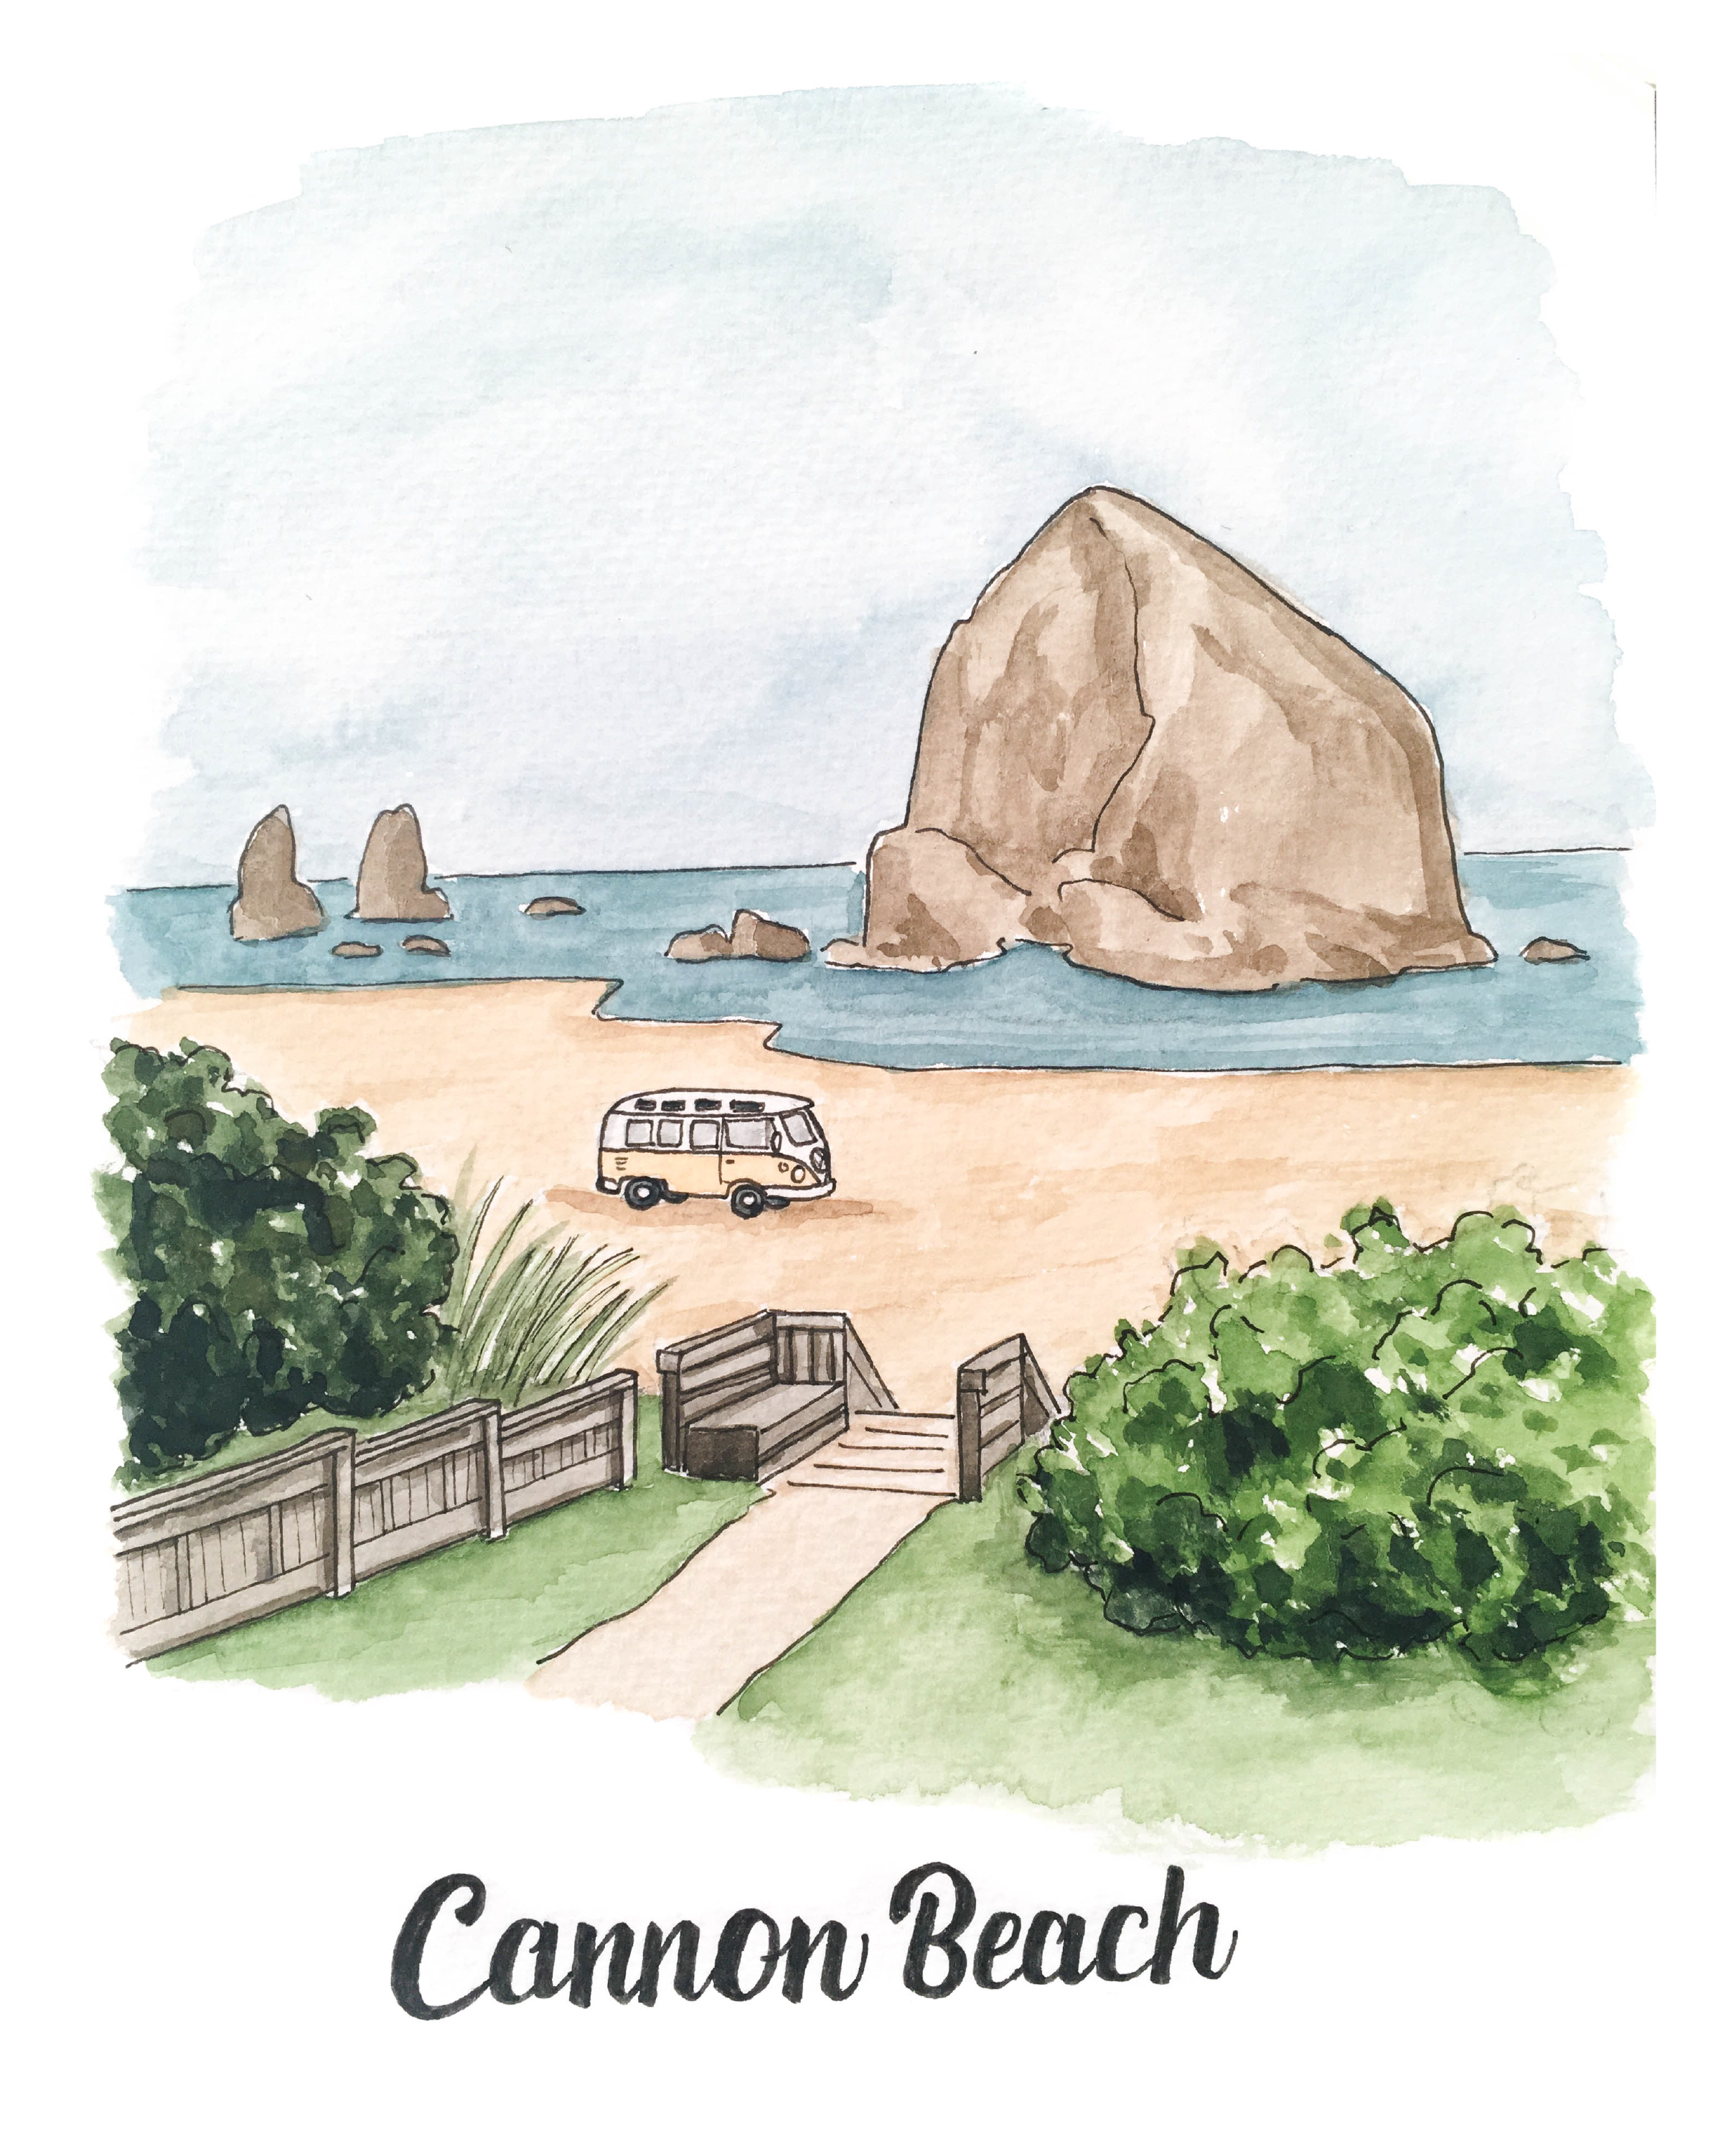 cannon beach-01.png